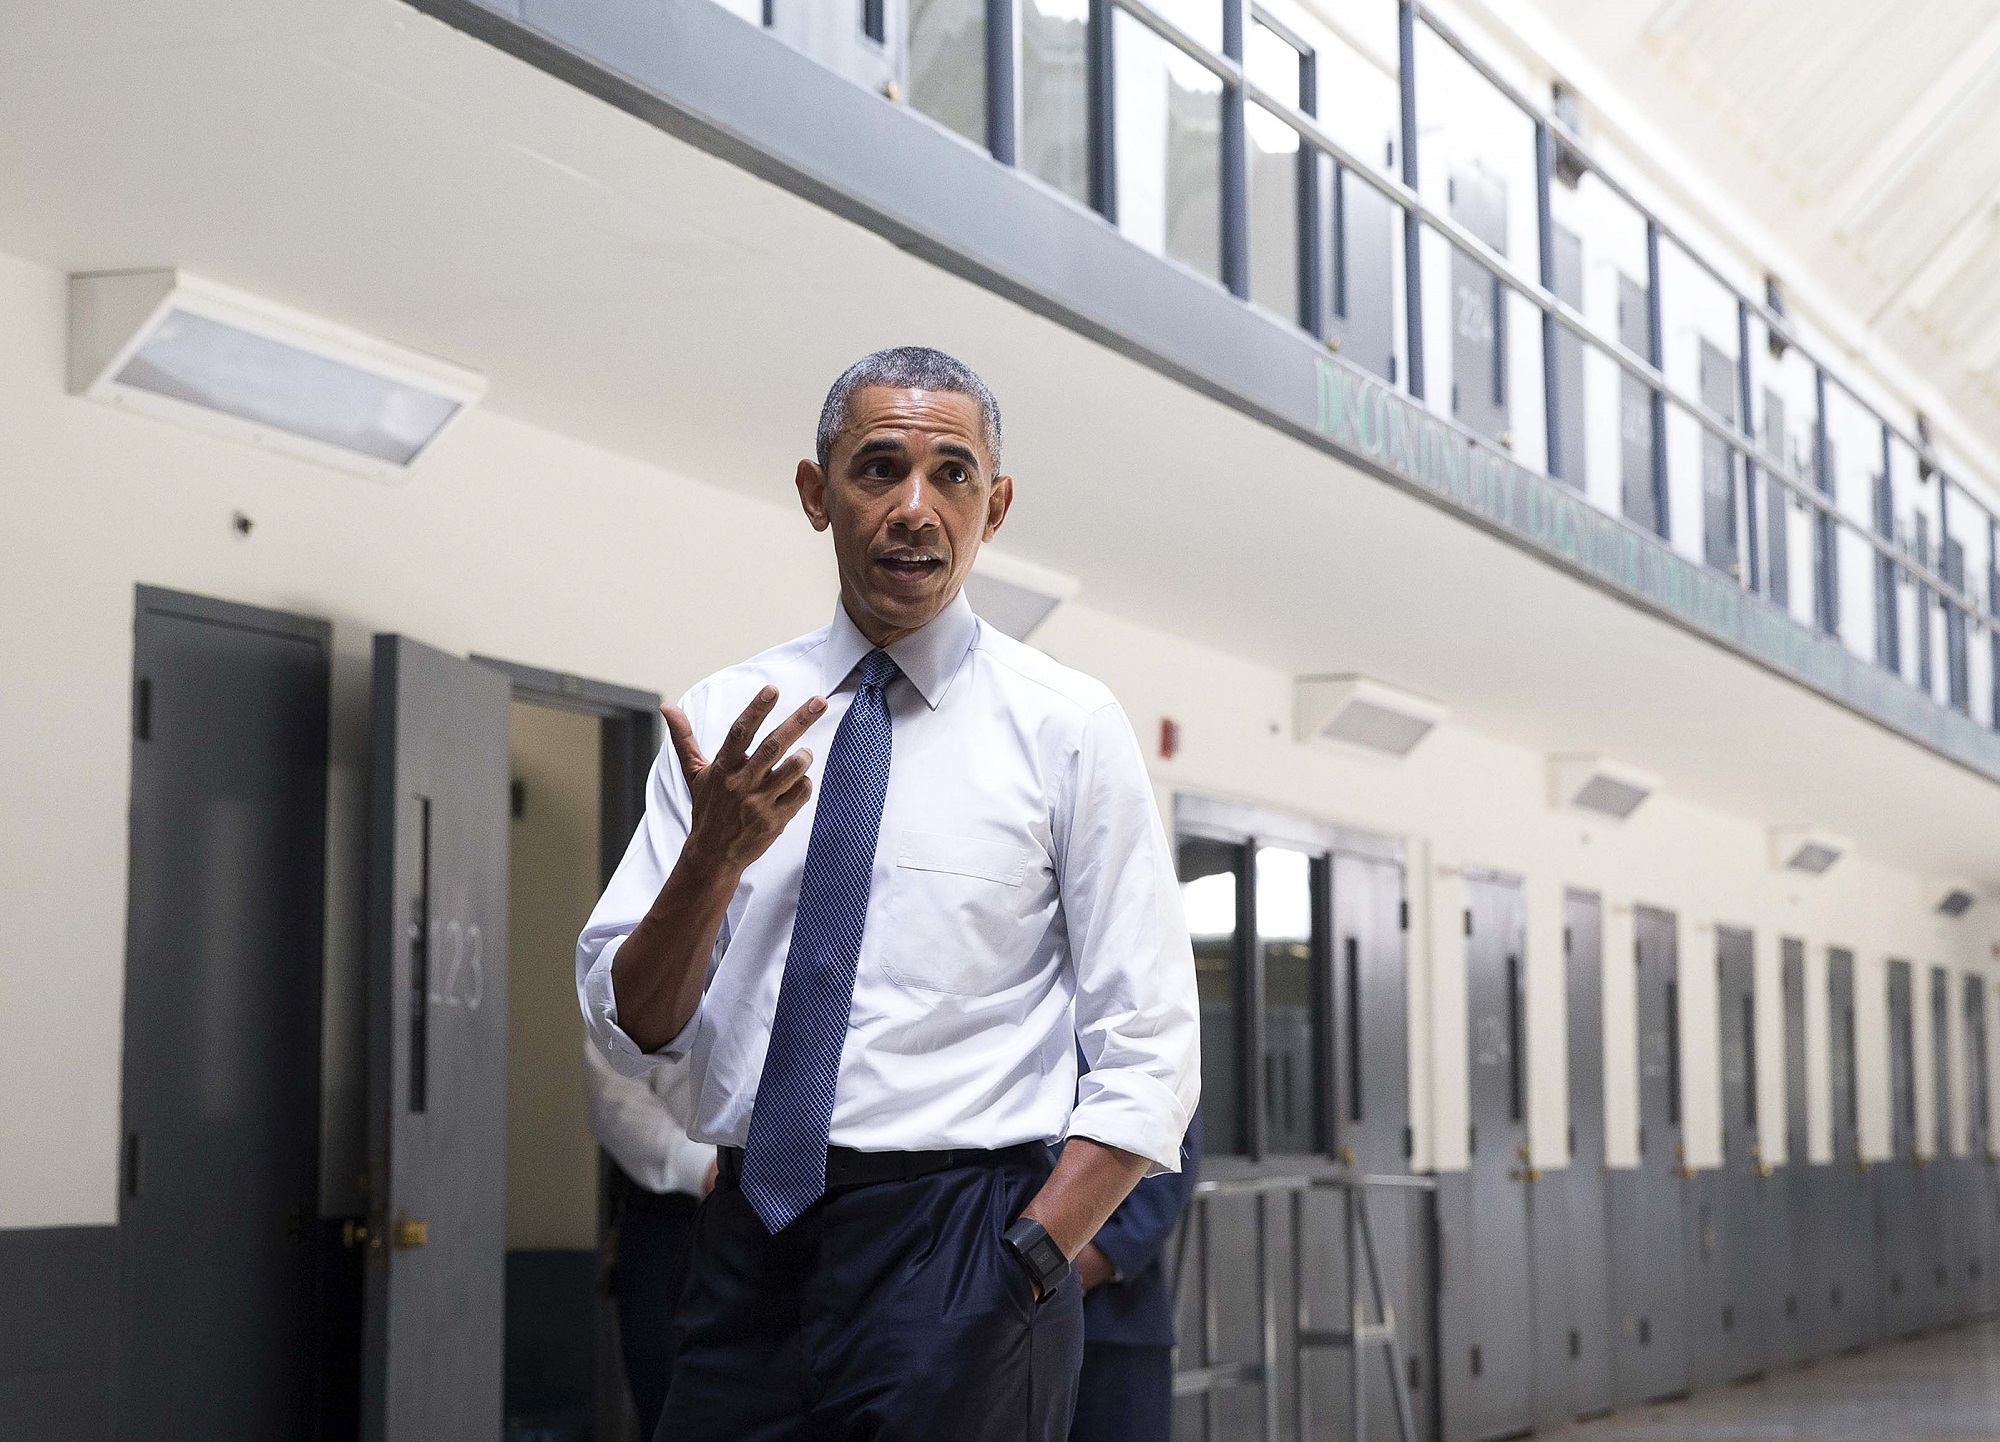 President Obama Commutes Two Brooklyn Men's Jail Sentences